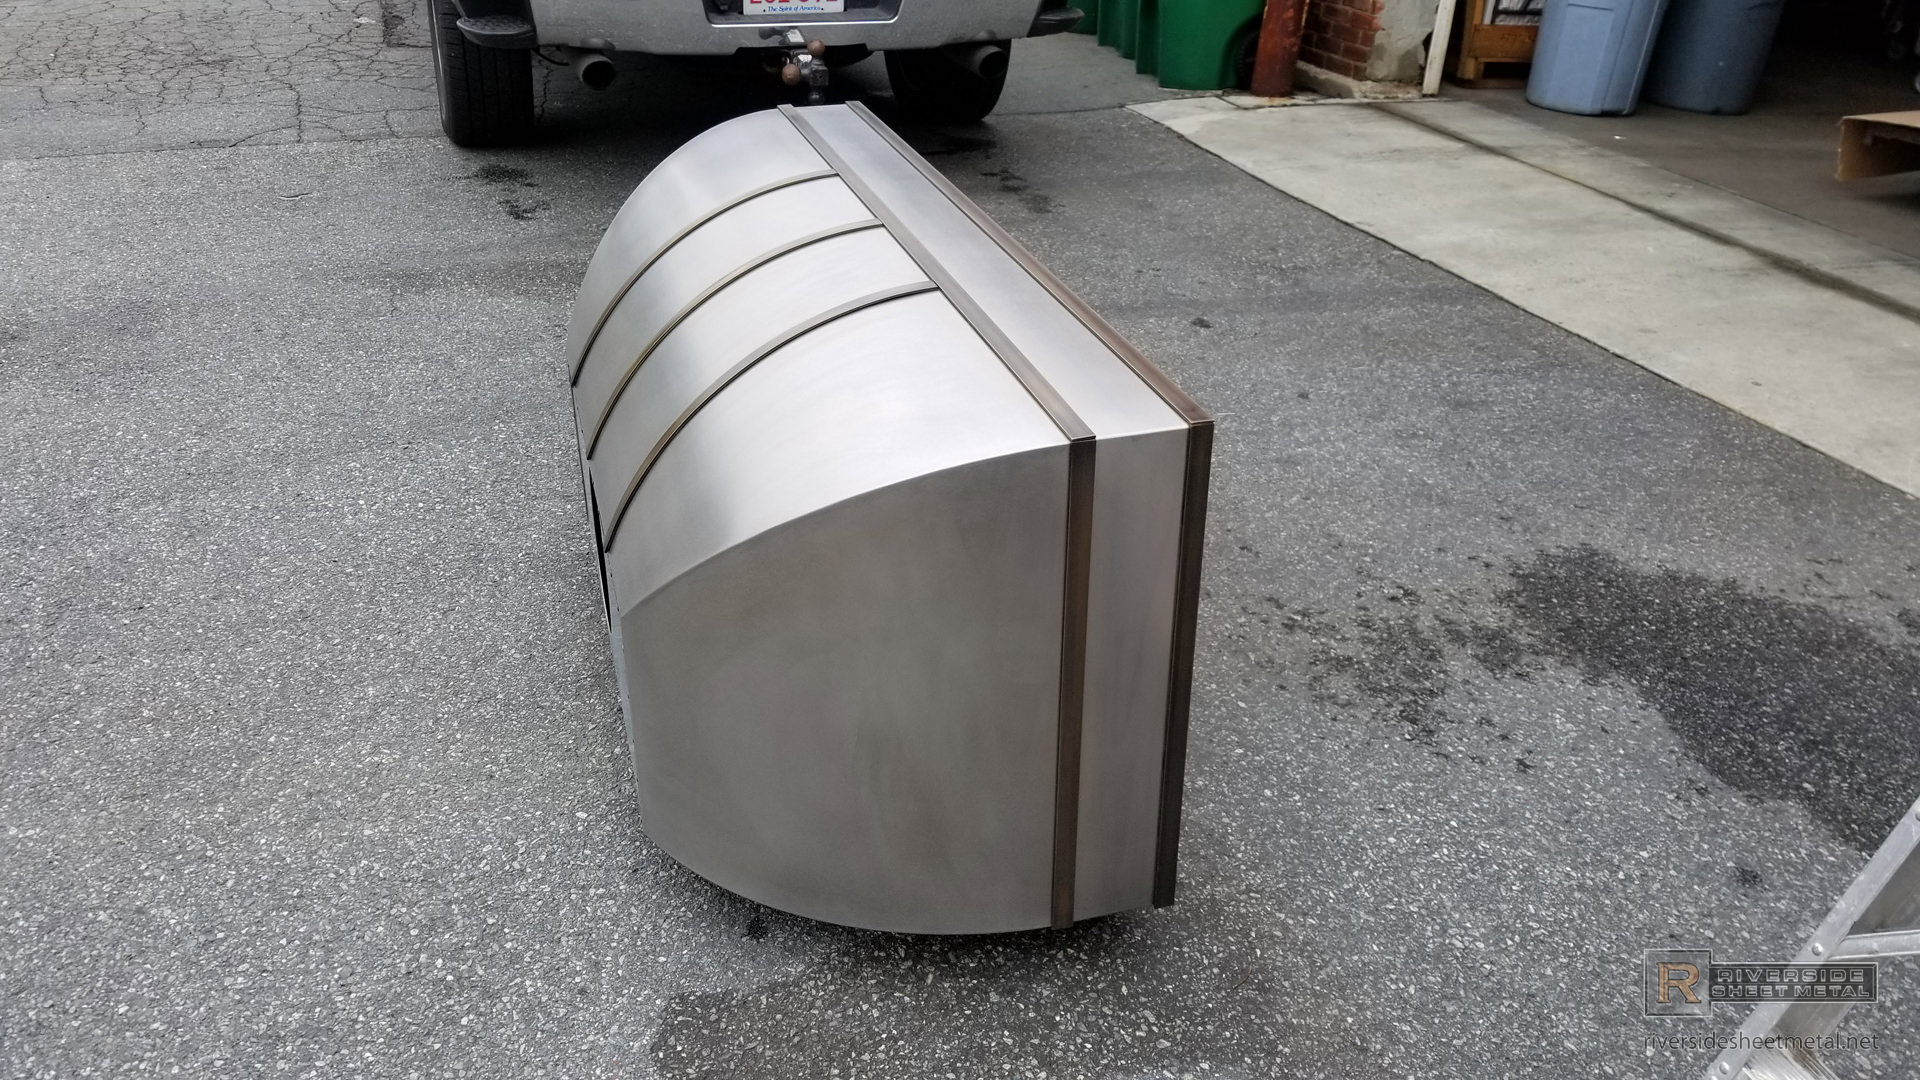 Bell Range Hood Vent With Rolled Stainless Steel And